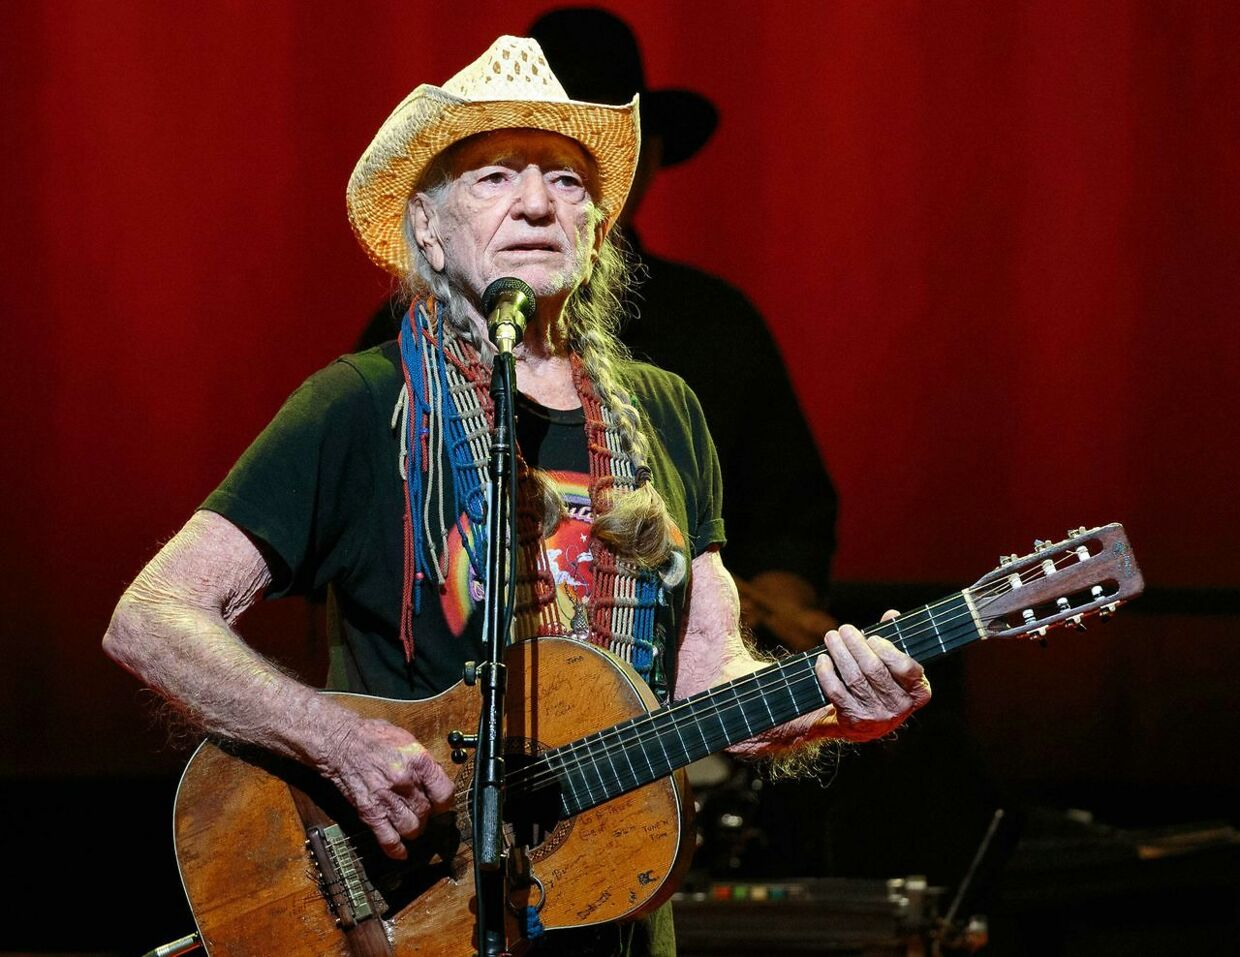 """(FILES) In this file photo taken on December 30, 2018, US Country music legend Willie Nelson performs during the """"Willie Nelson & Family New Year"""" concert at Austin City Limits Live in Austin, Texas. - Nelson has canceled the rest of his tour set to run for 30 more shows over a breathing problem. """"To my fans, I'm sorry to cancel my tour, but I have a breathing problem that I need to have my doctor check out. I'll be back Love, Willie, """" the 86-year-old tweeted. (Photo by SUZANNE CORDEIRO / AFP)"""